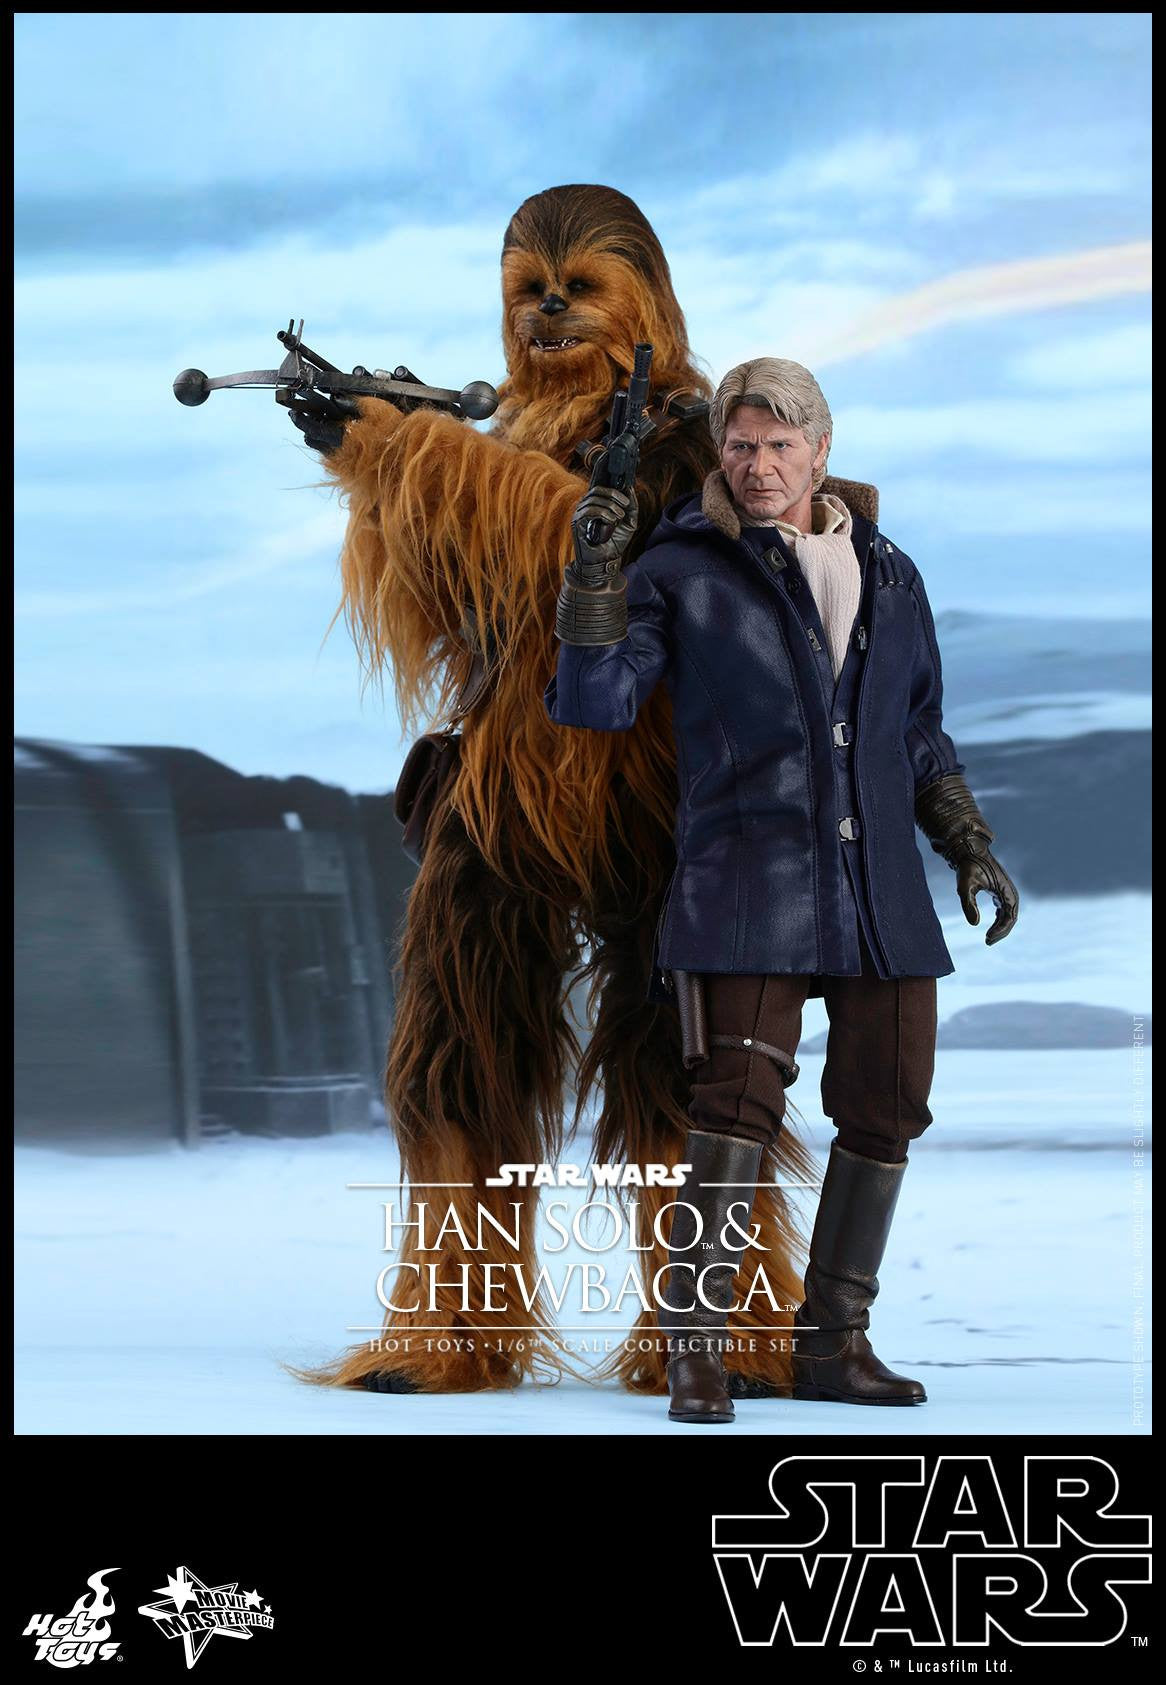 Hot Toys - MMS376 - Star Wars: The Force Awakens - Han Solo & Chewbacca Set - Marvelous Toys - 3